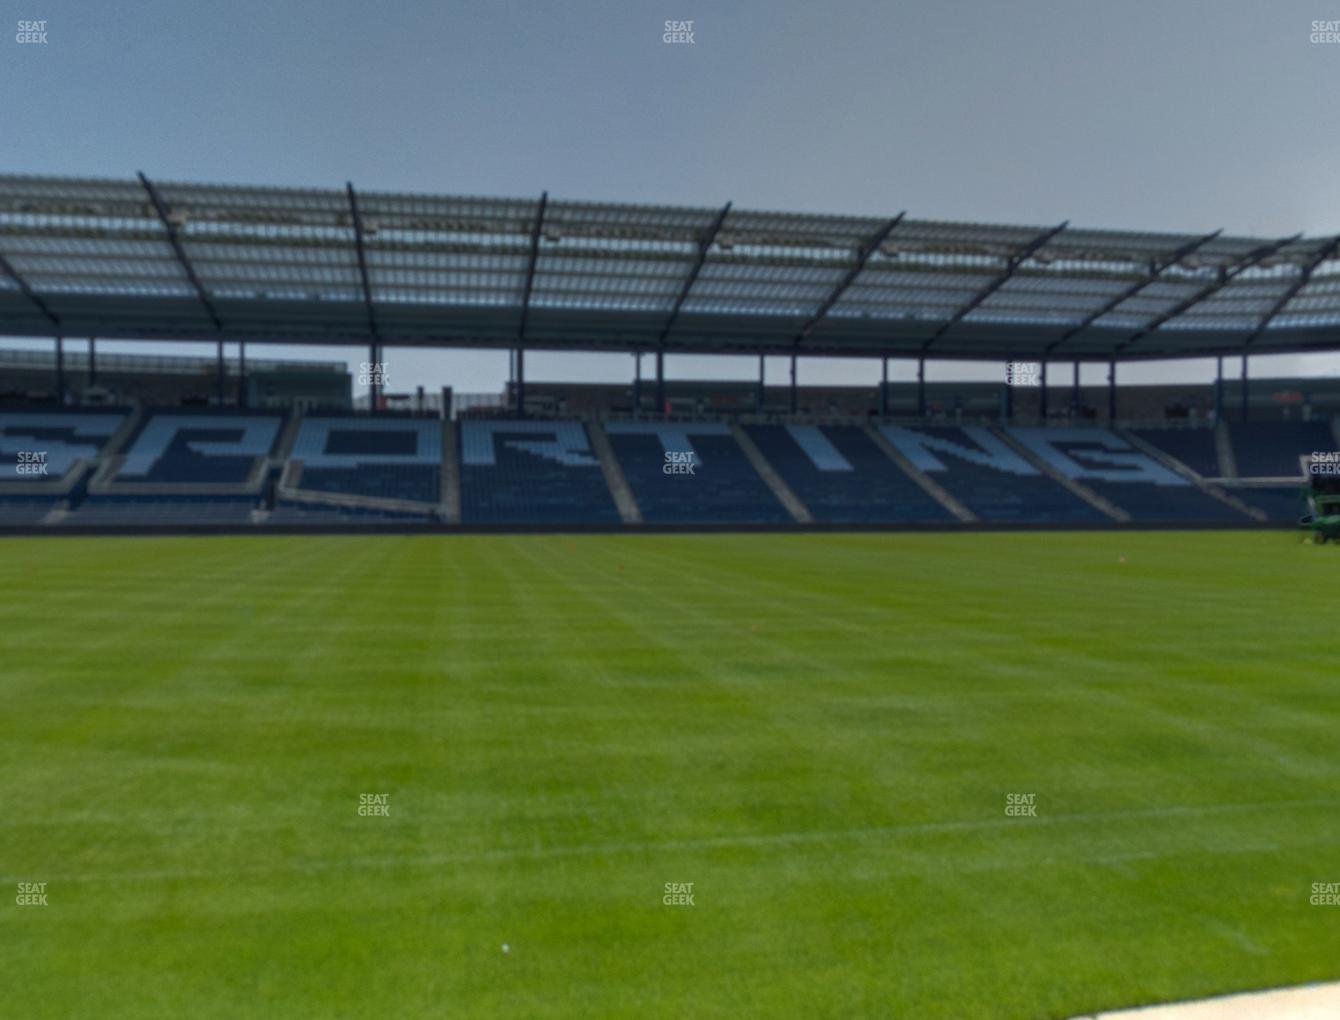 Sporting Kansas City at Children's Mercy Park Field Club 4 View